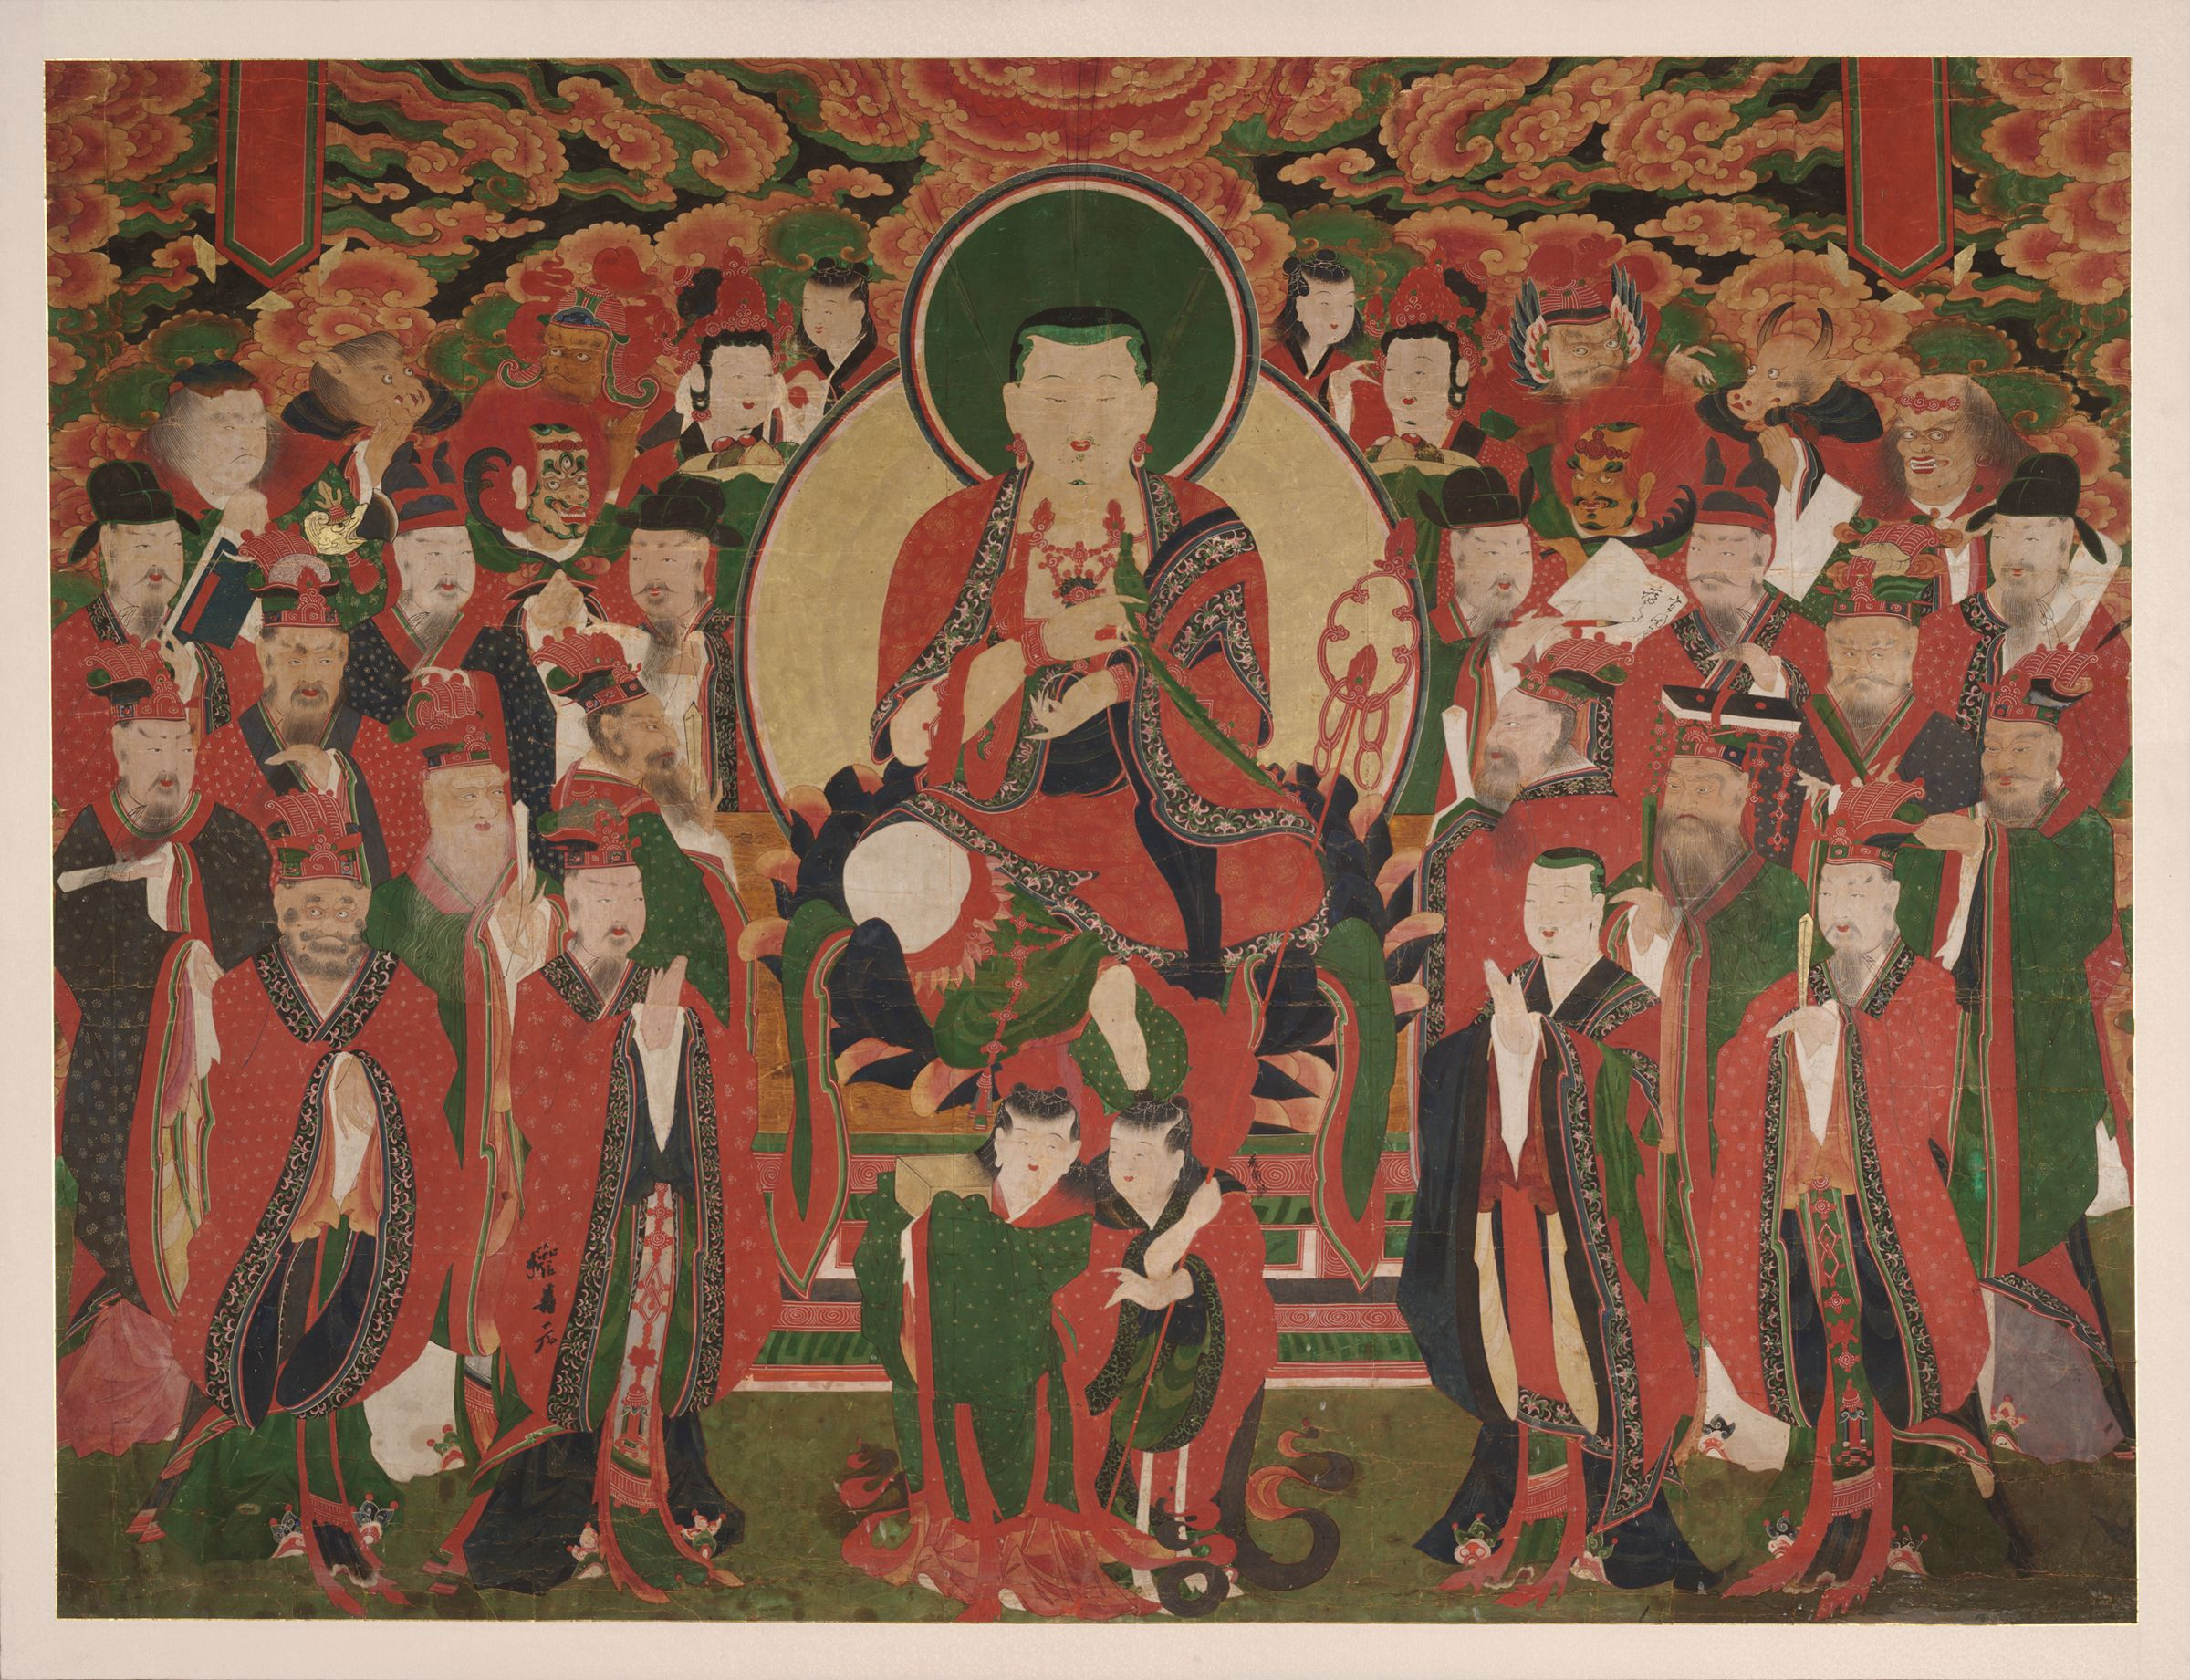 Seated Chijang Posal (Chinese, Dizang Pusa; Sanskrit, Bodhisattva Ksitigarbha) Flanked By Monk Tomyông (Chinese, Daoming) And Demon King Mutôk Kuiwang (Chinese, Wudu Guiwang) And Surrounded By The Ten Kings Of Hell And Their Retinues